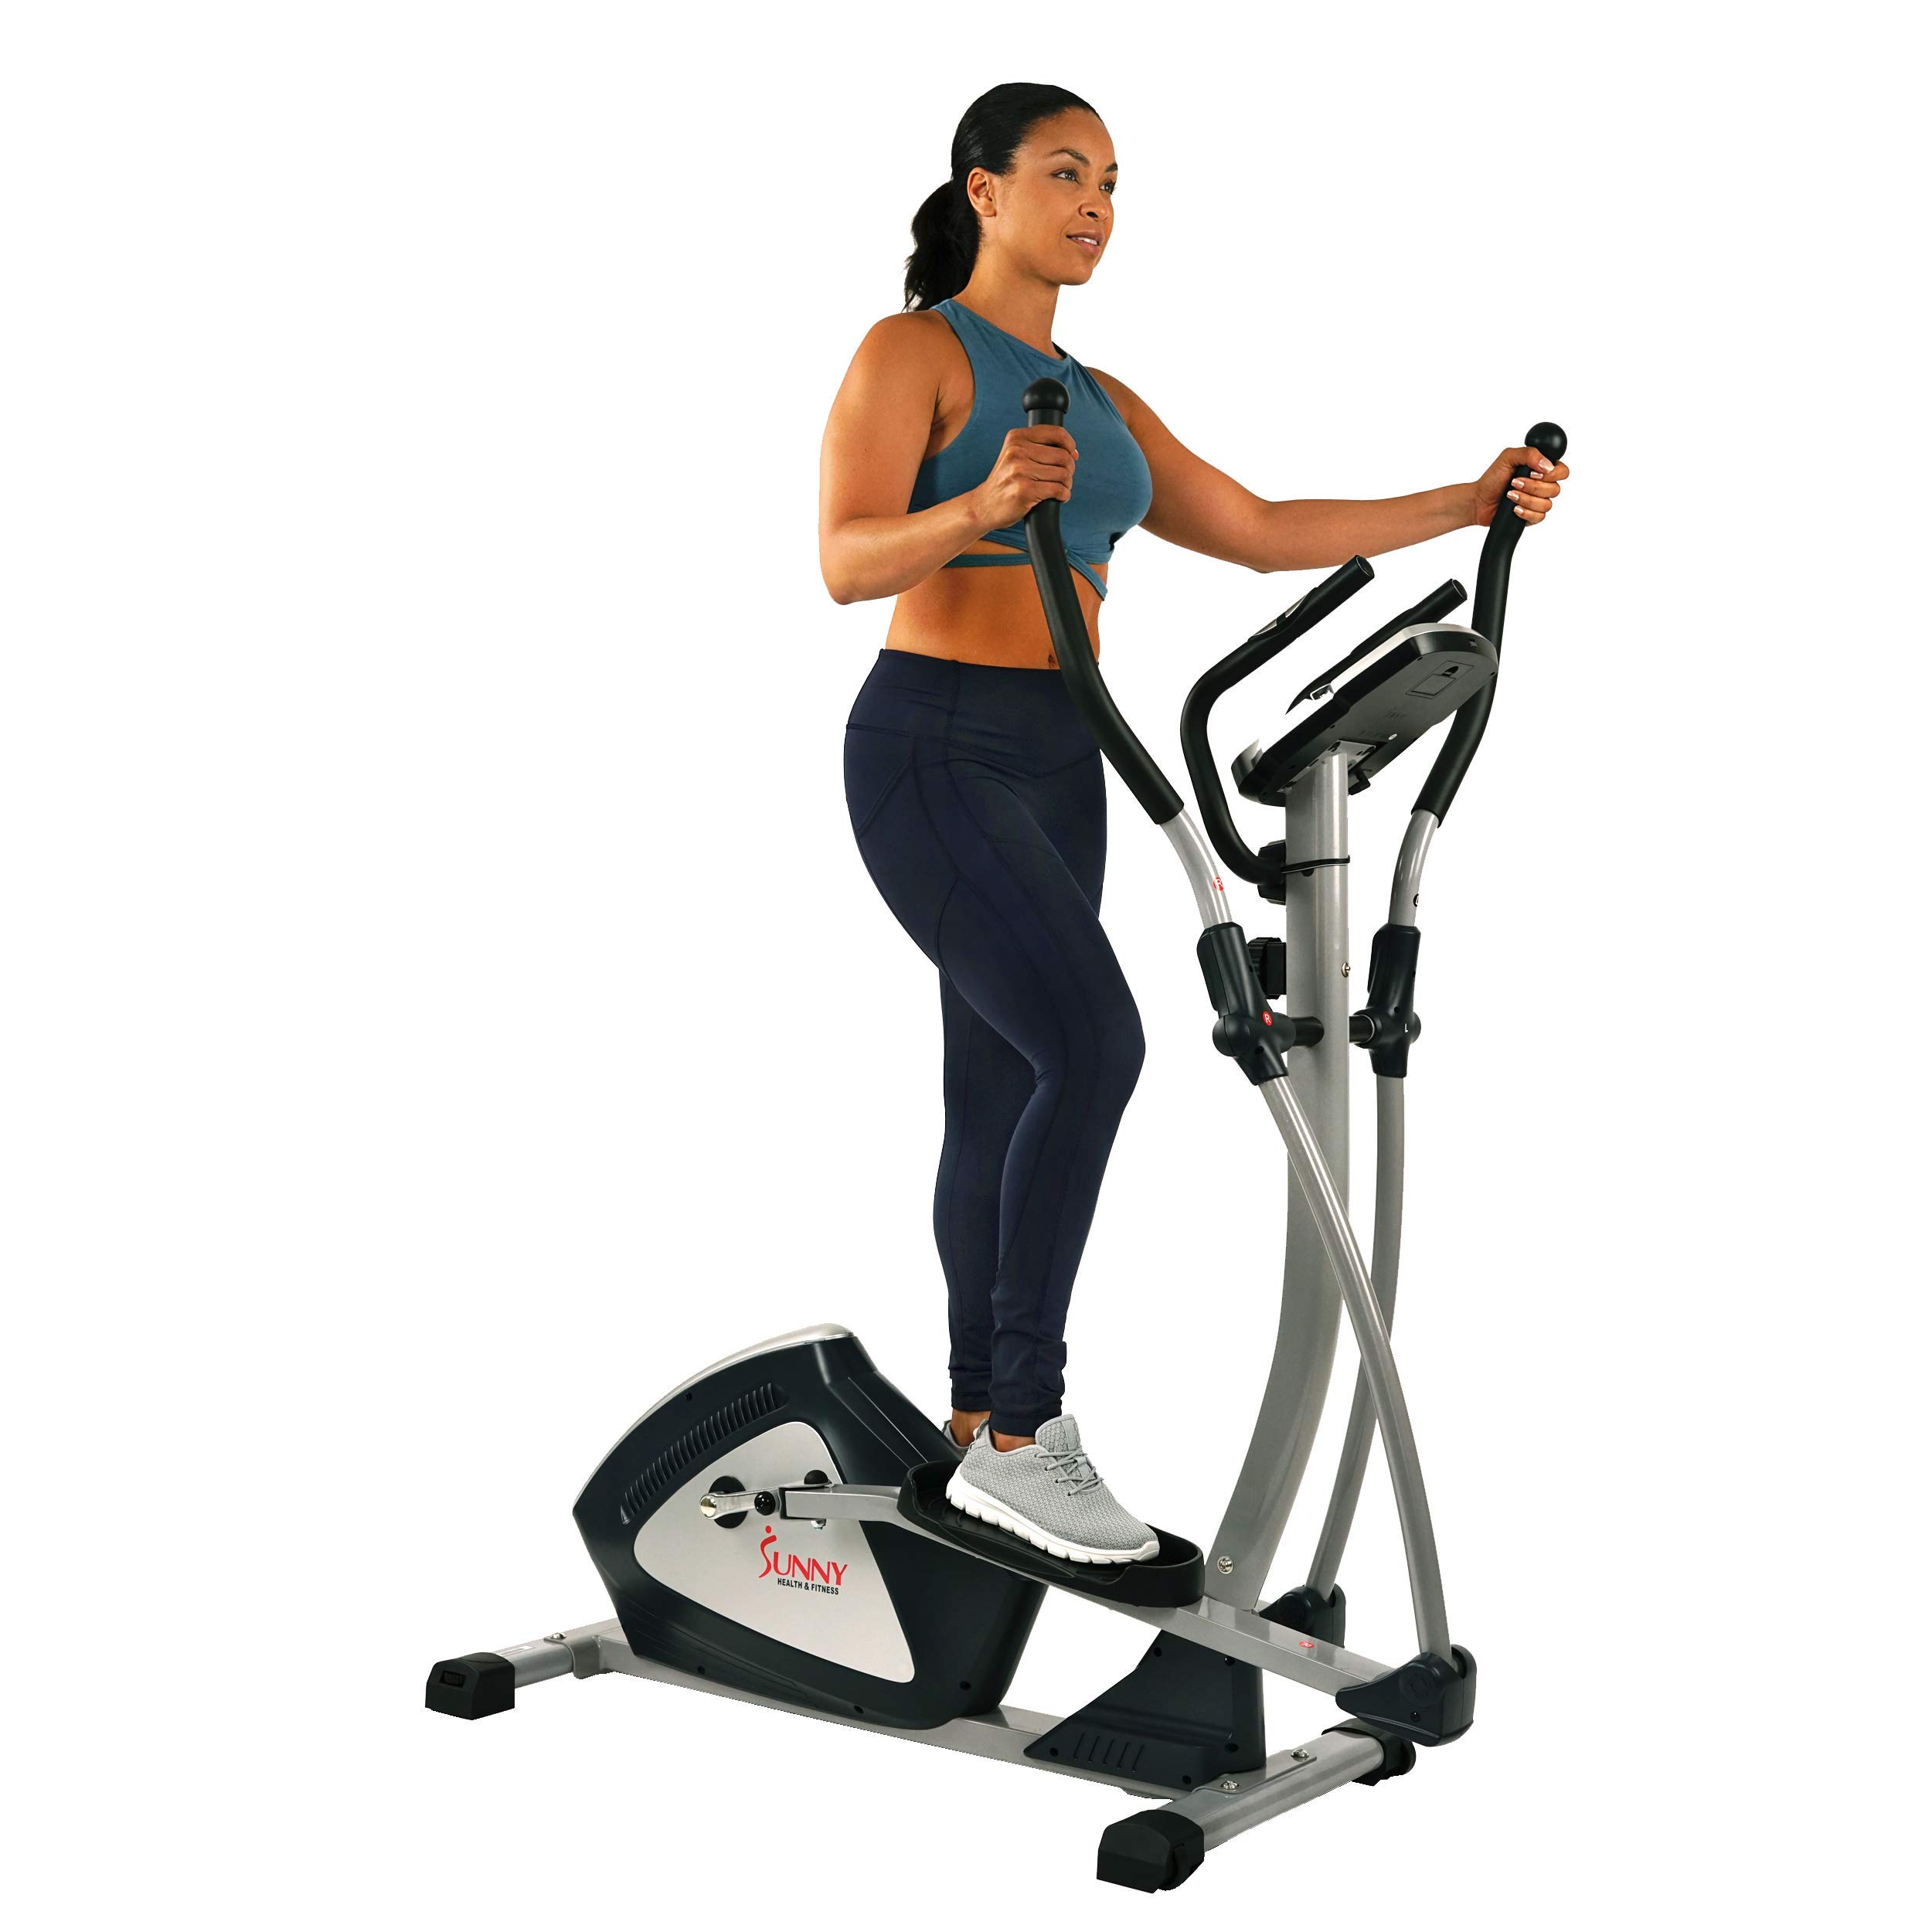 Sunny Health & Fitness Magnetic Elliptical Trainer Machine w/ Tablet Holder, LCD Monitor, 287 LB Max Weight and Pulse Monitoring - Endurance Zone - SF-E3804 by Sunny Health & Fitness